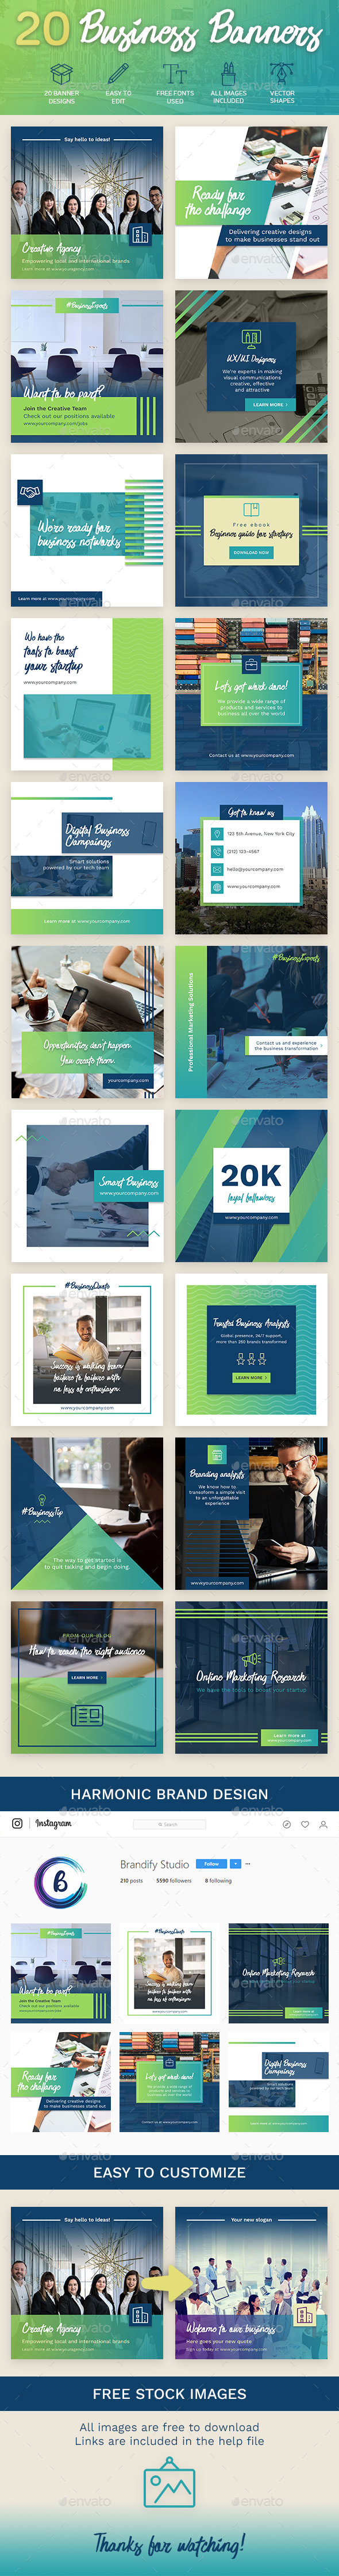 Corporate Banners - Social Media Web Elements